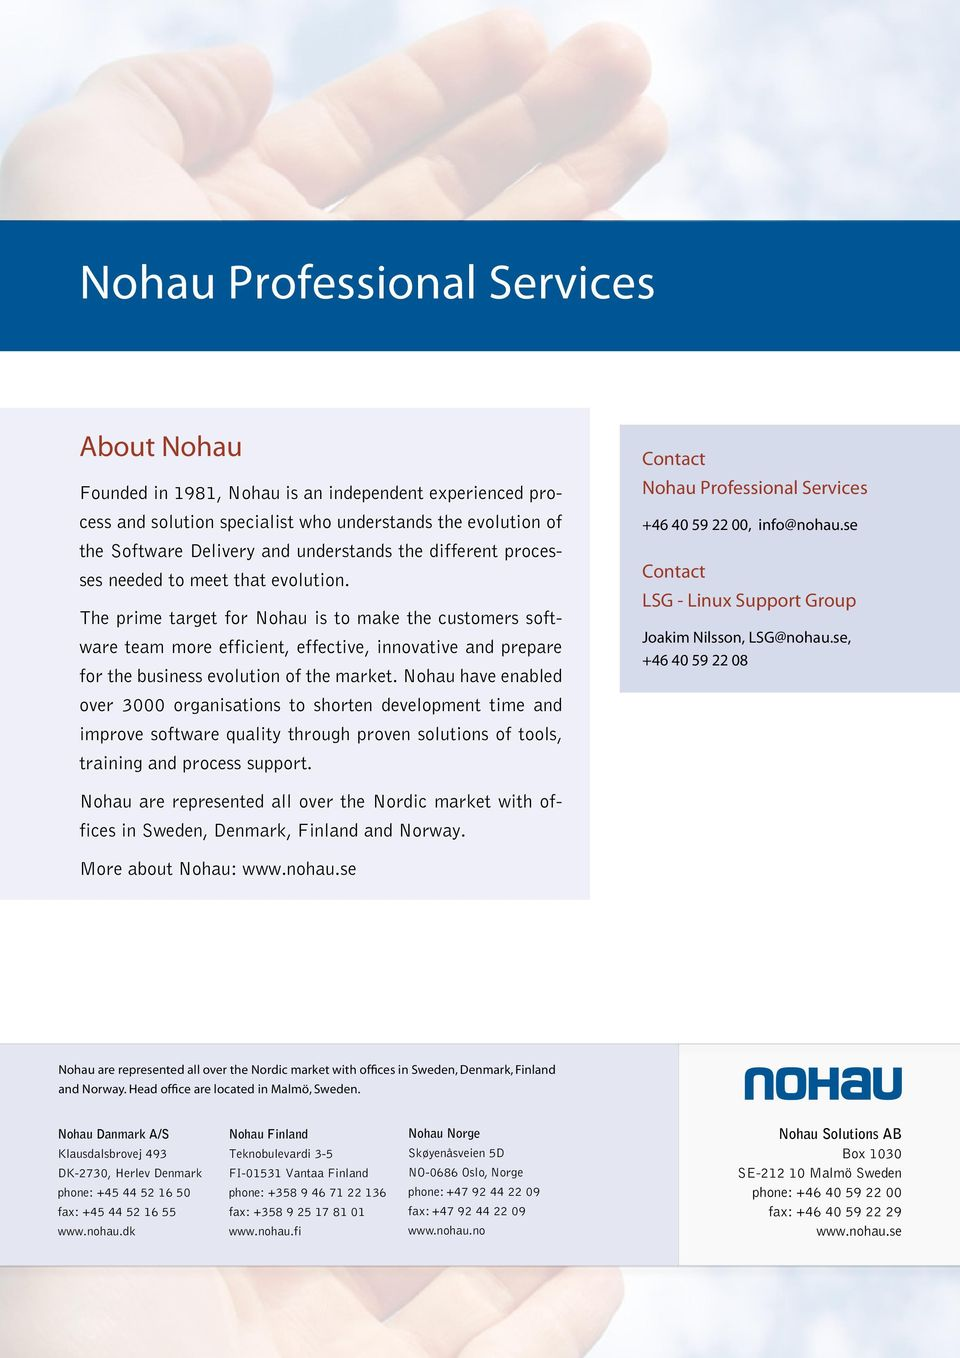 Nohau have enabled over 3000 organisations to shorten development time and improve software quality through proven solutions of tools, training and process support.